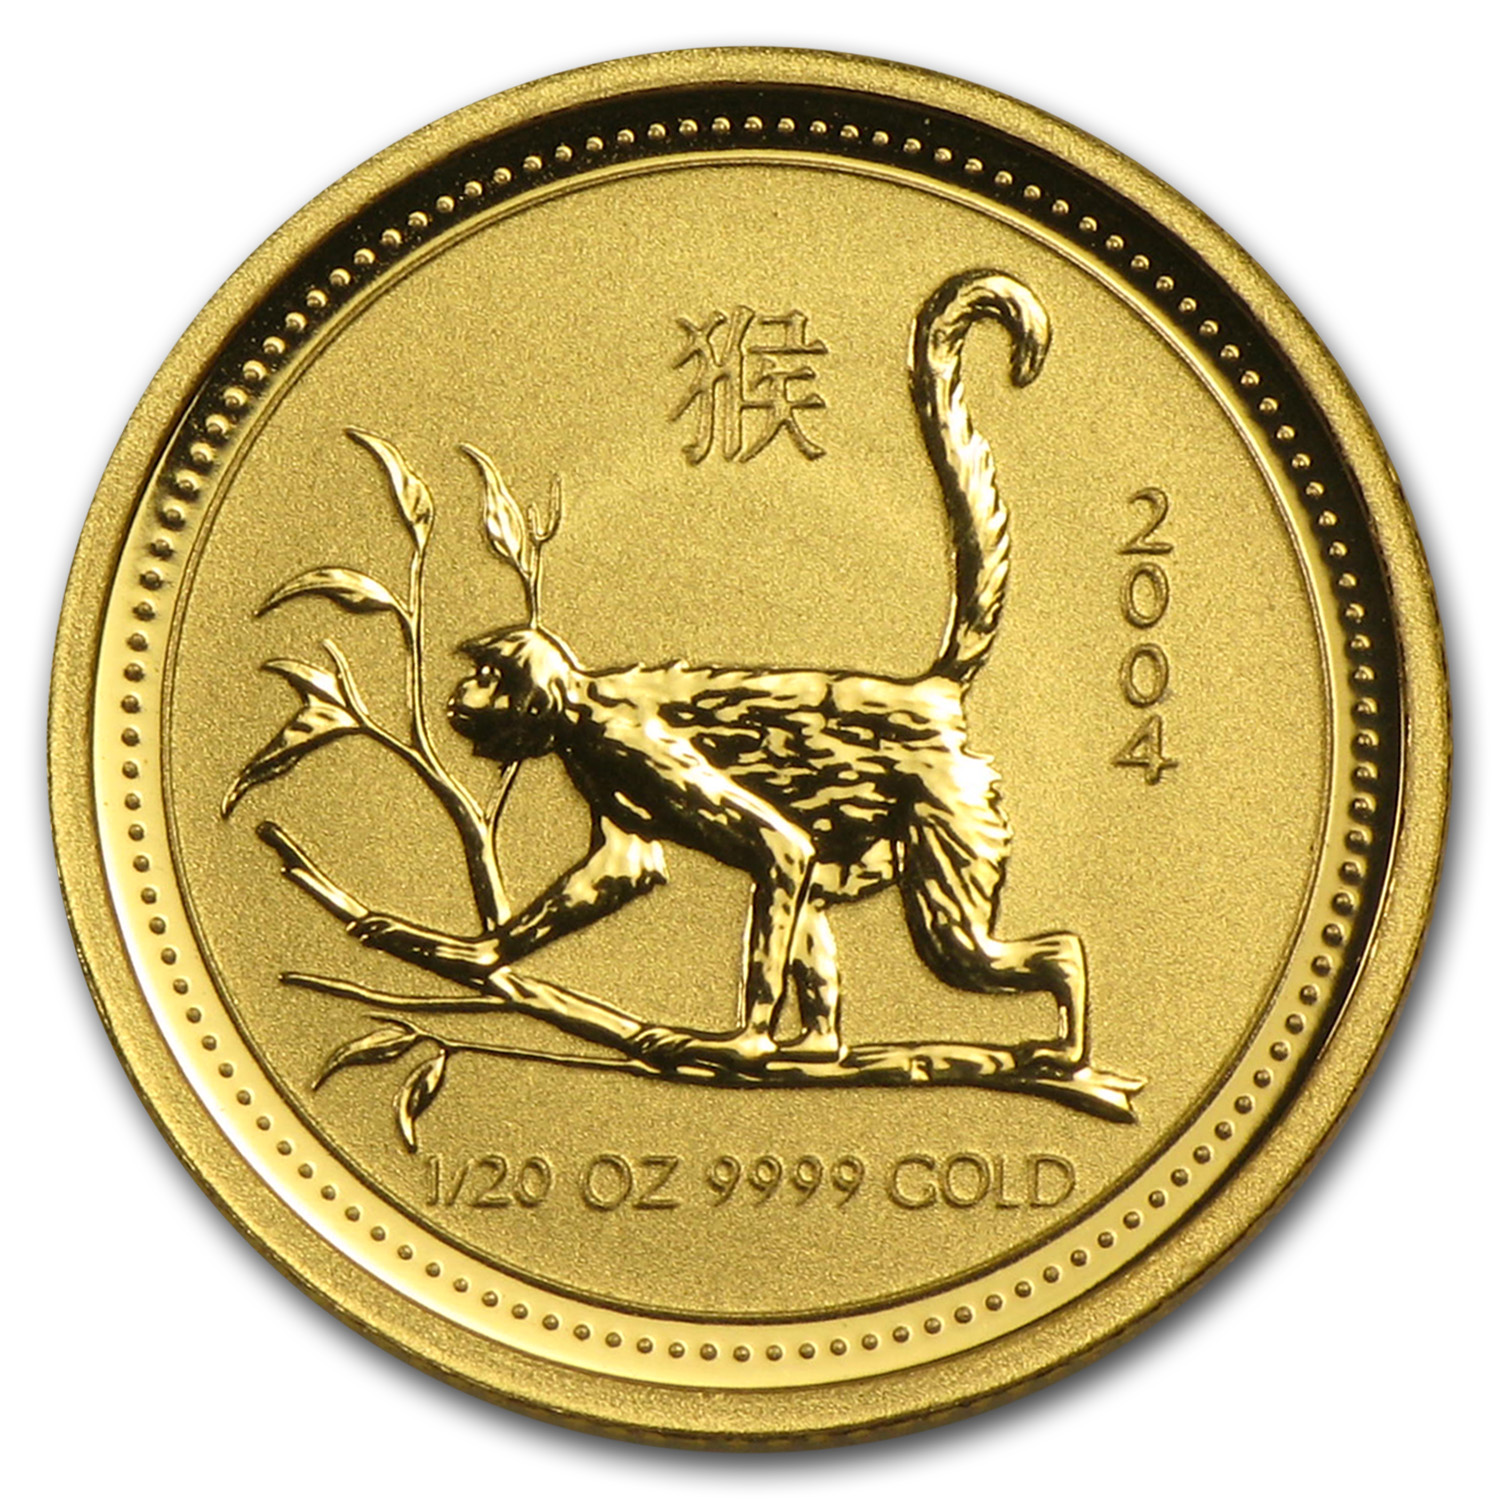 2004 1/20 oz Gold Lunar Year of the Monkey BU (Series I)